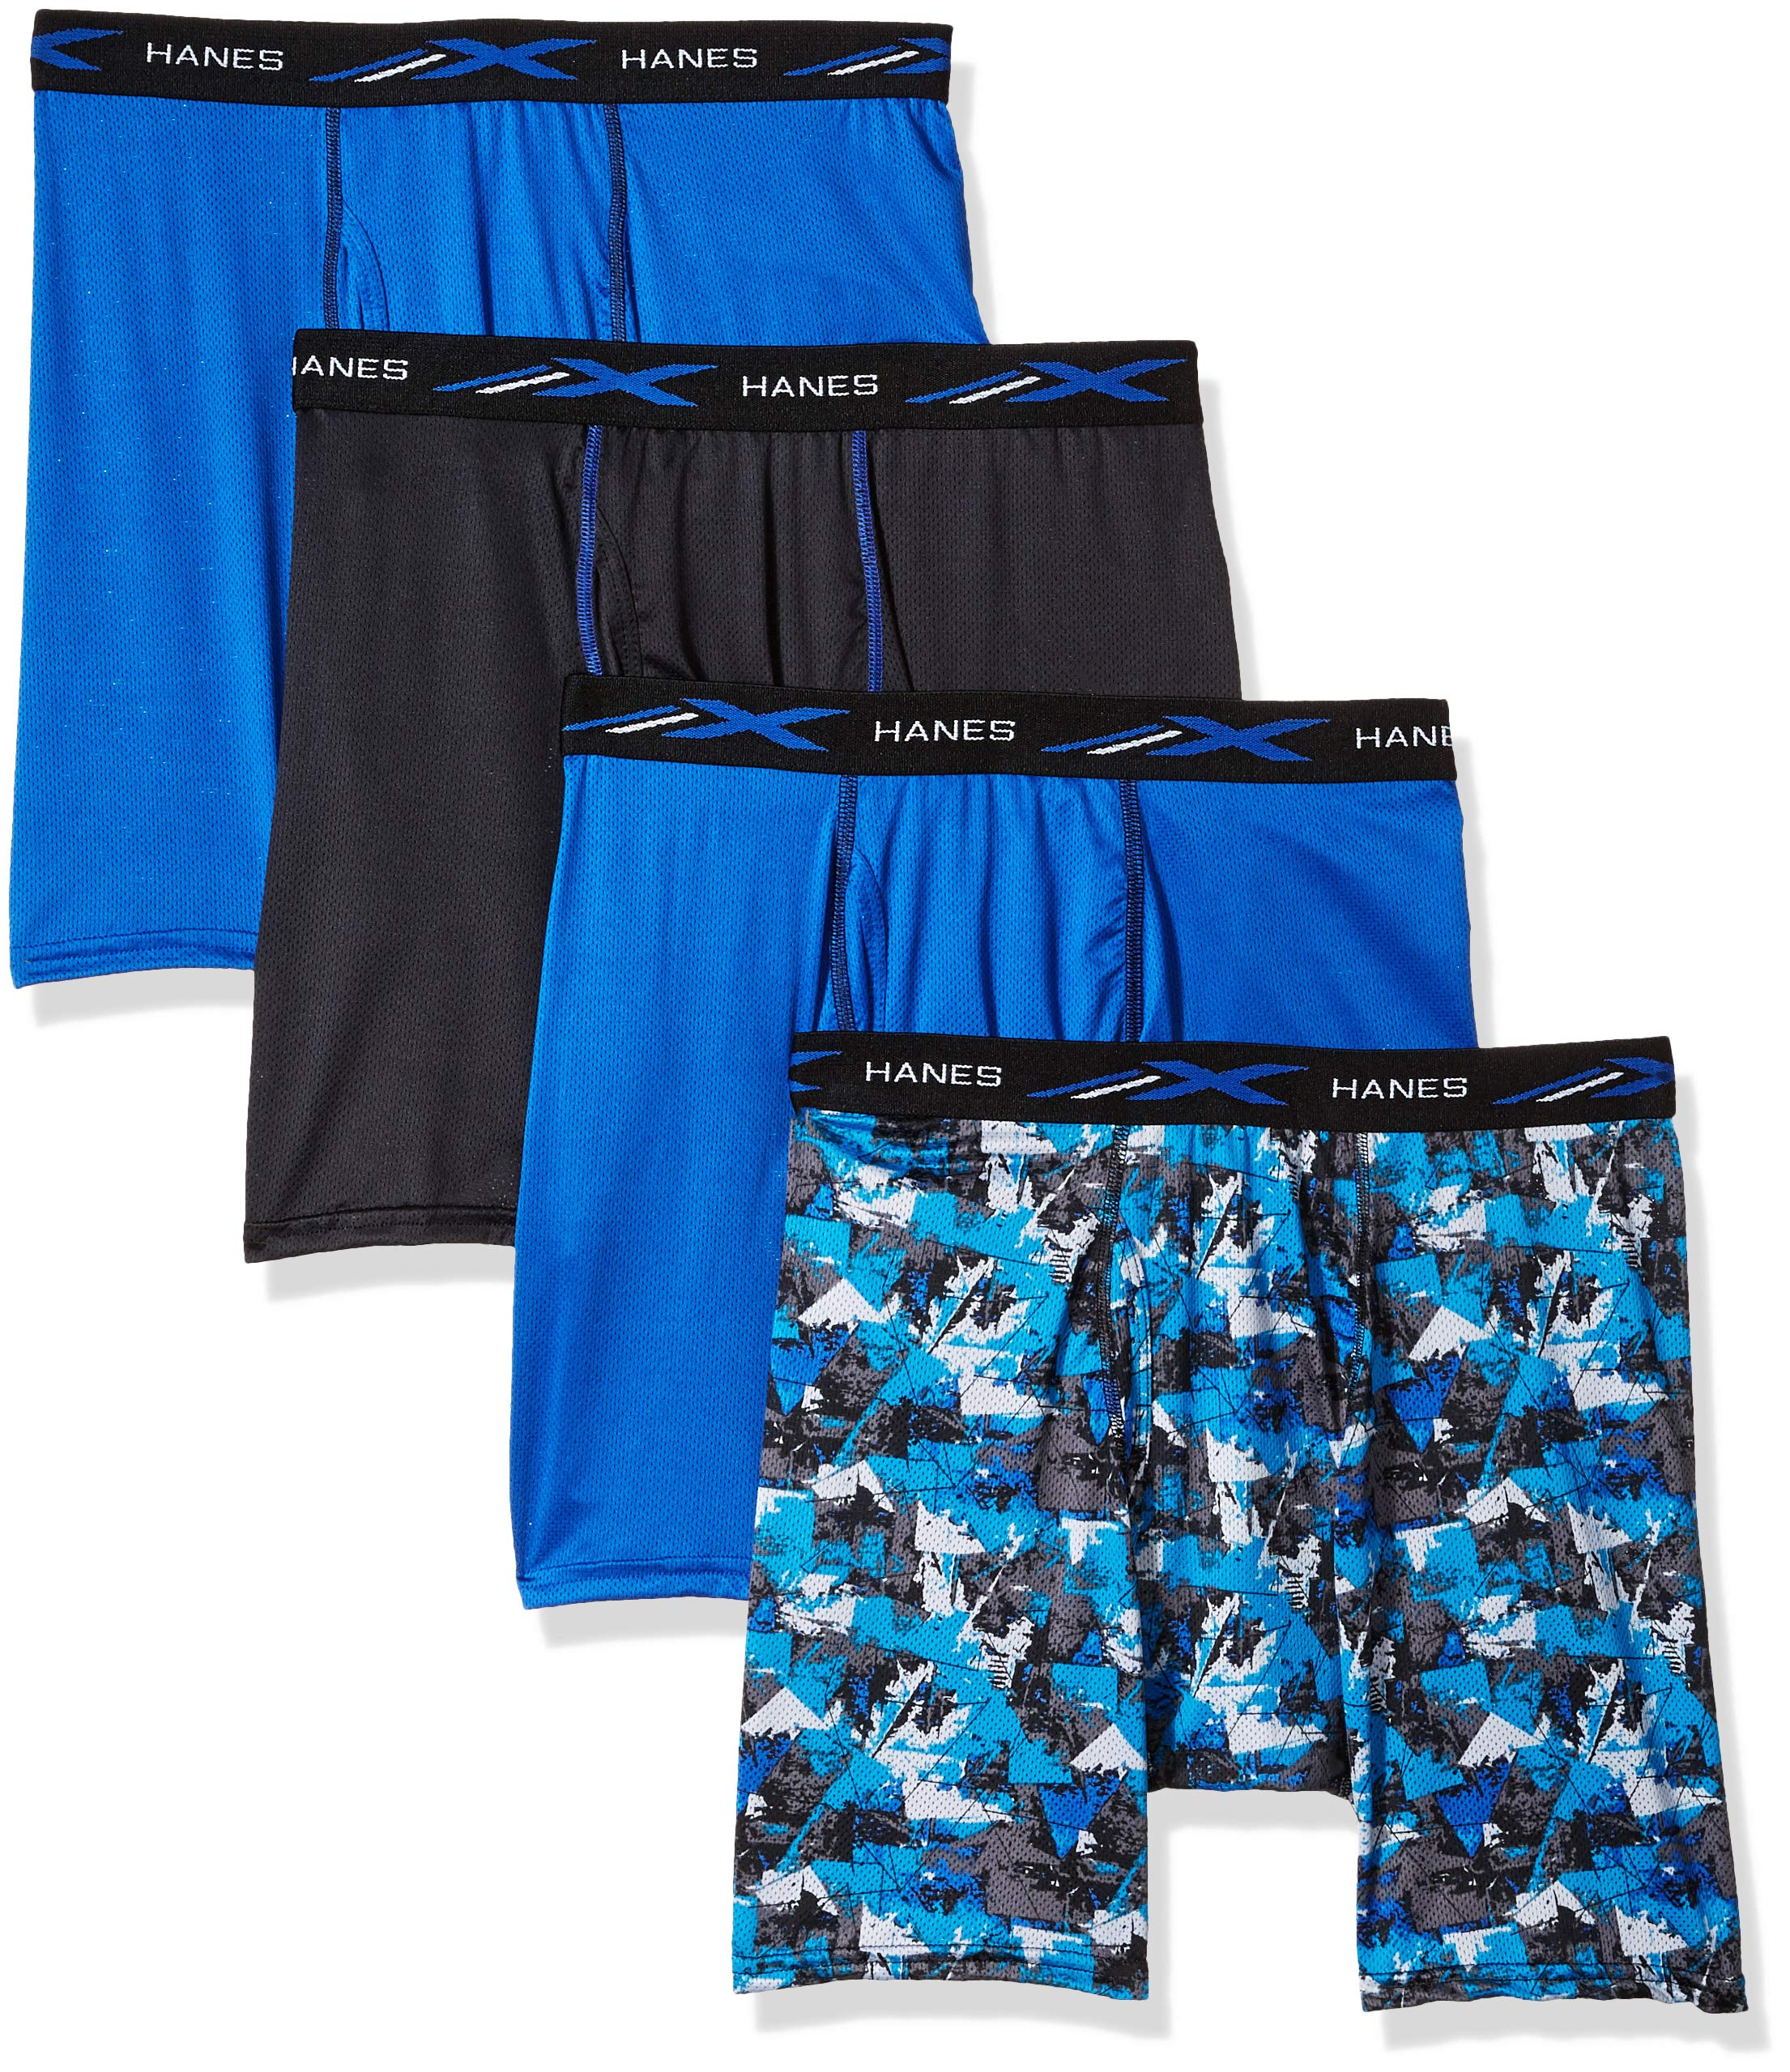 Hanes Men's X-Temp 4-Way Stretch Mesh Boxer Brief 4-Pack, Dark Assorted, Large by Hanes